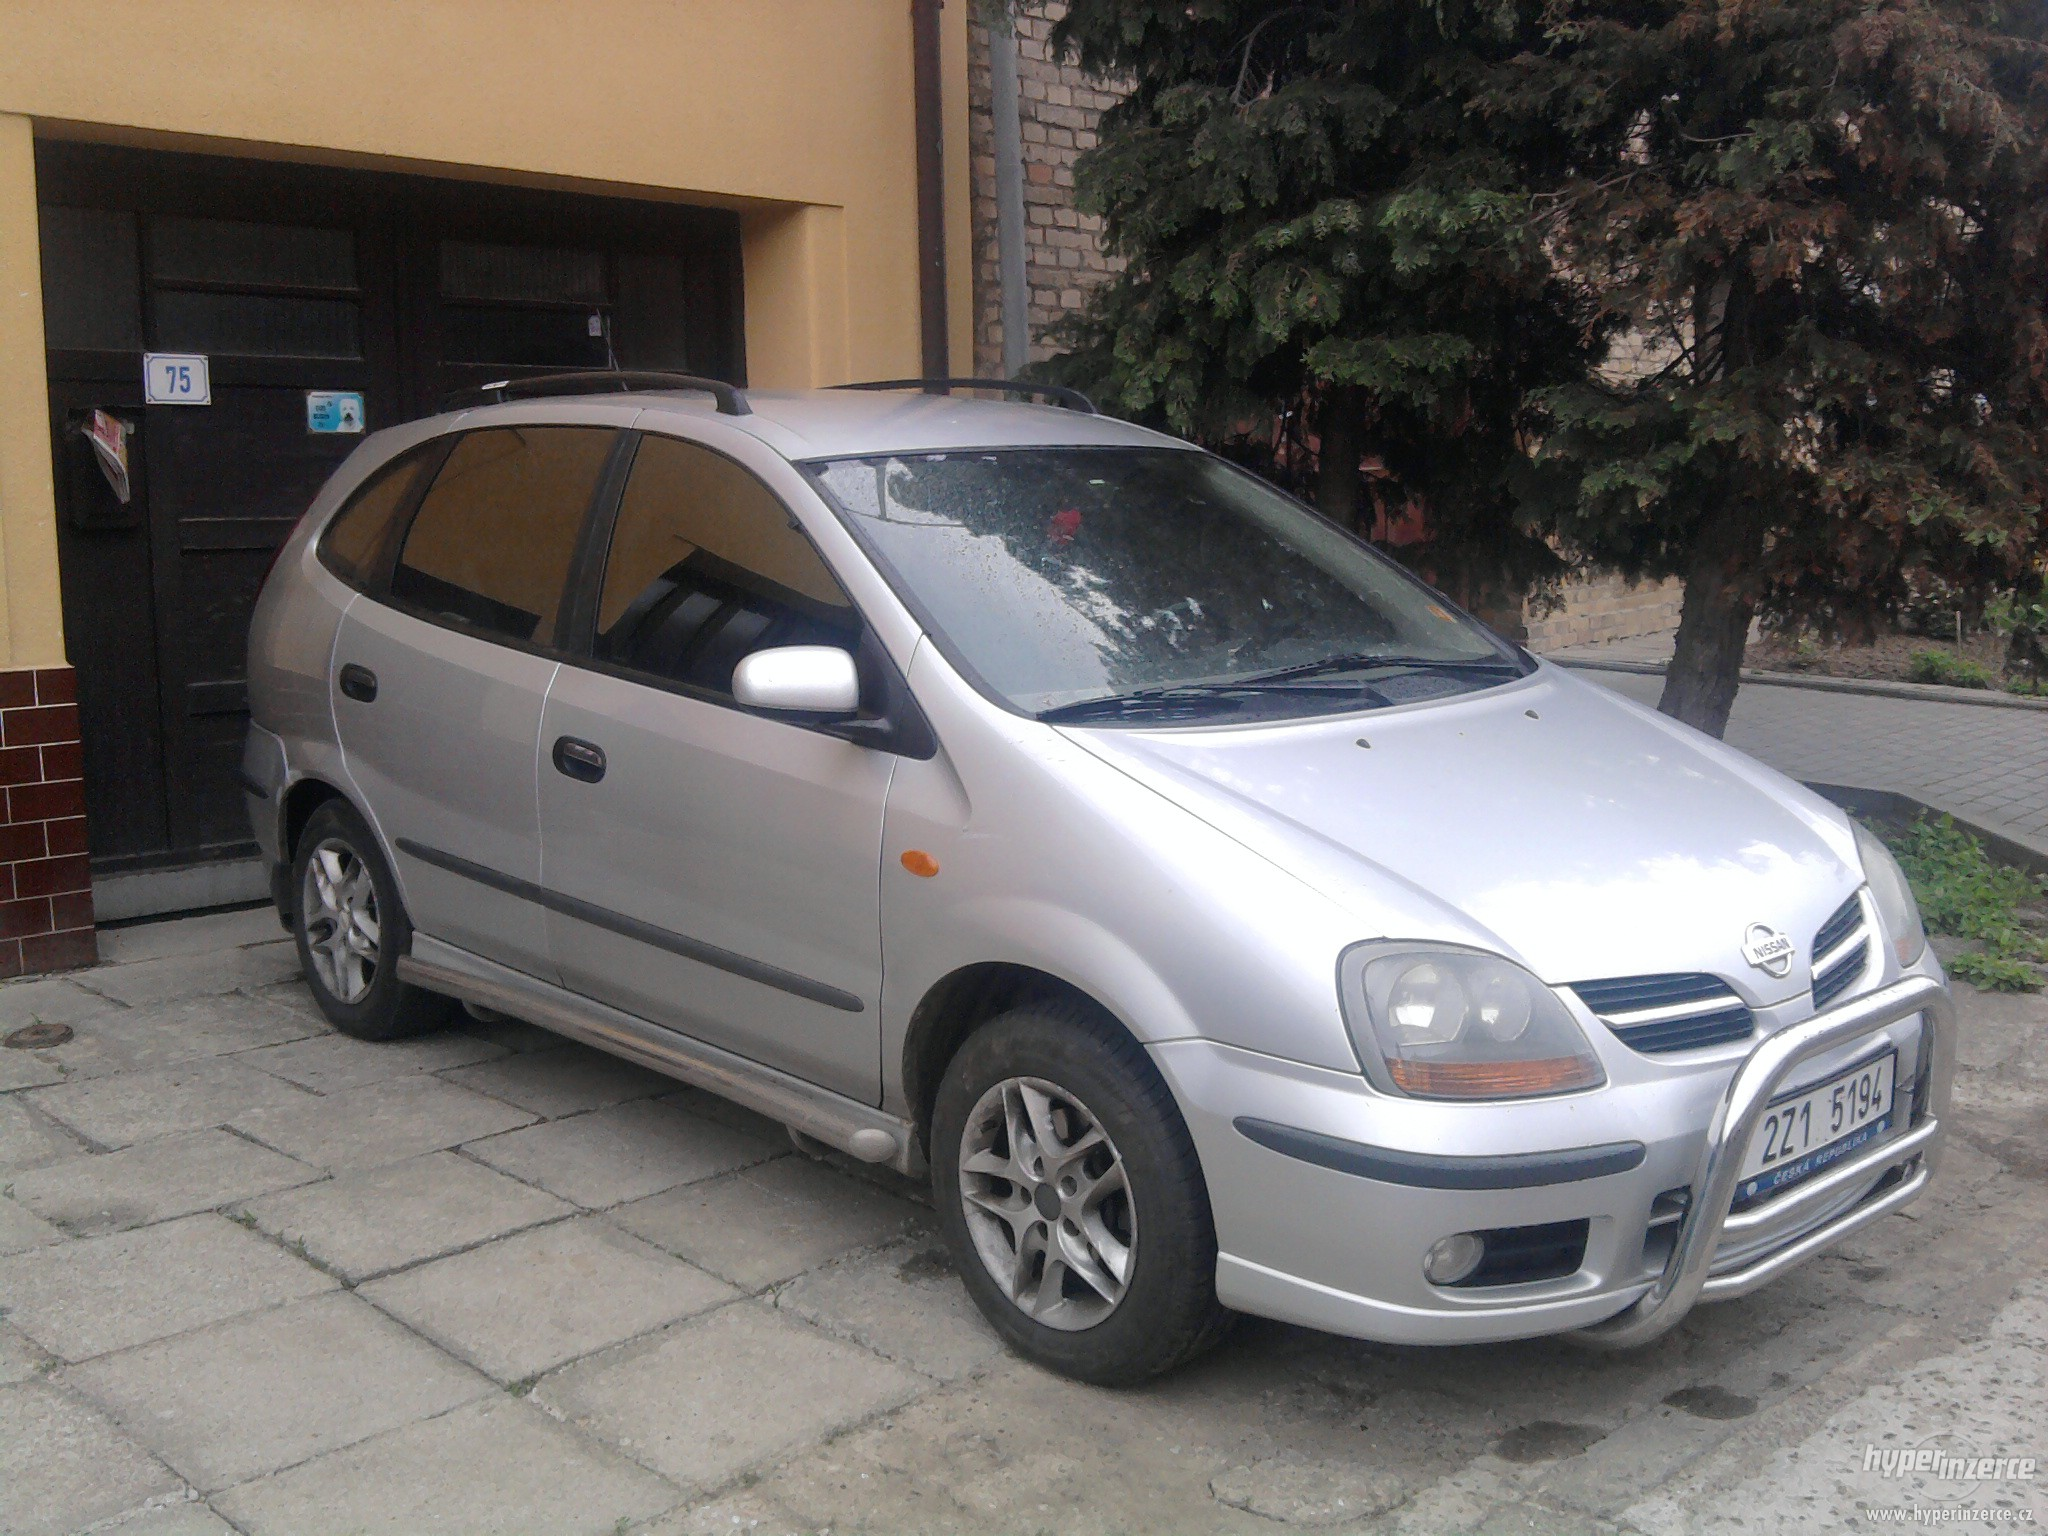 2001 nissan almera tino pictures information and specs. Black Bedroom Furniture Sets. Home Design Ideas